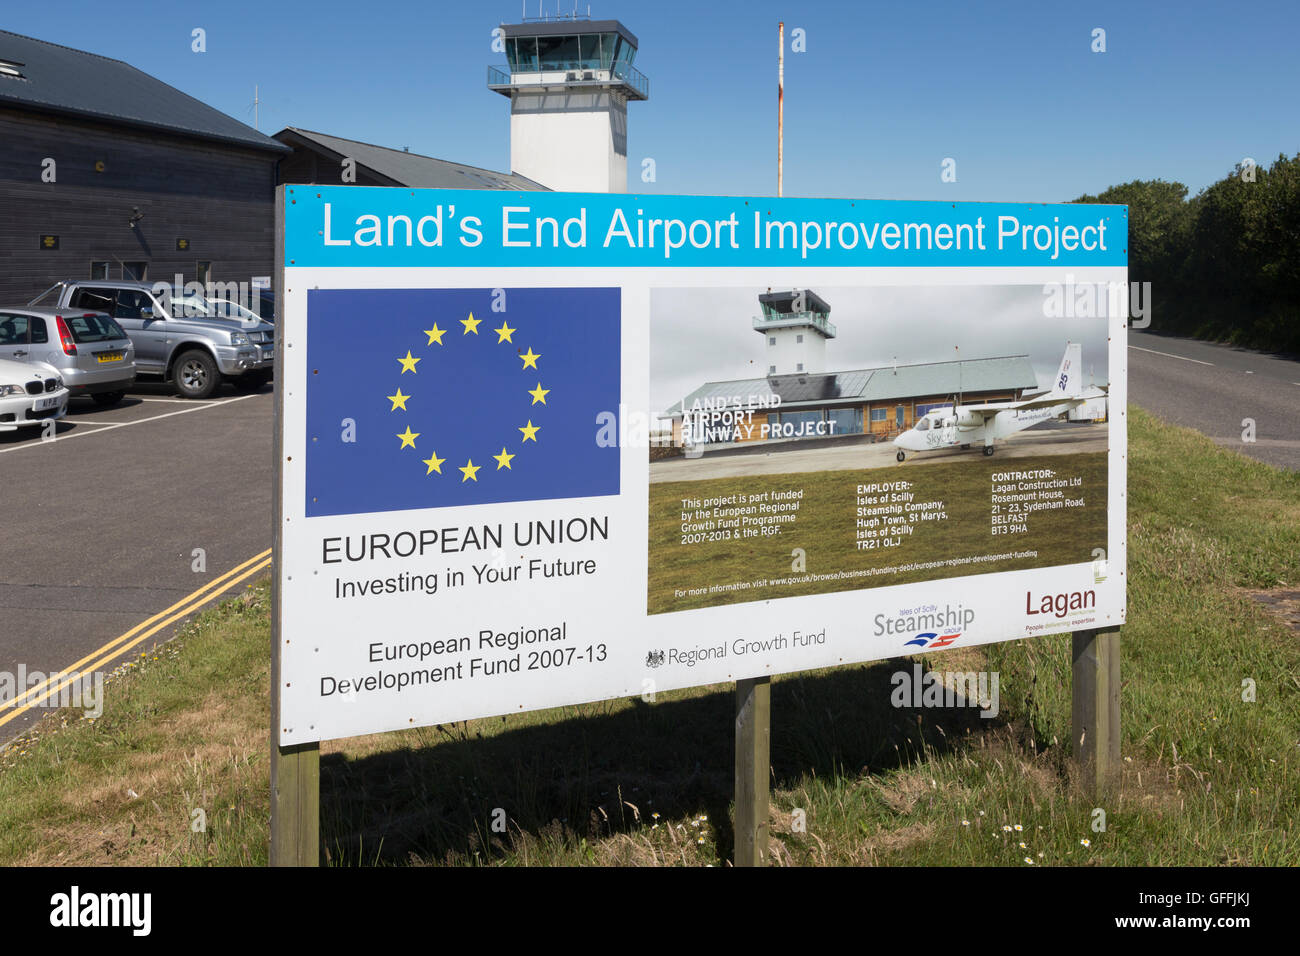 European Union investing in Land's End airport improvement project, Cornwall, UK. - Stock Image